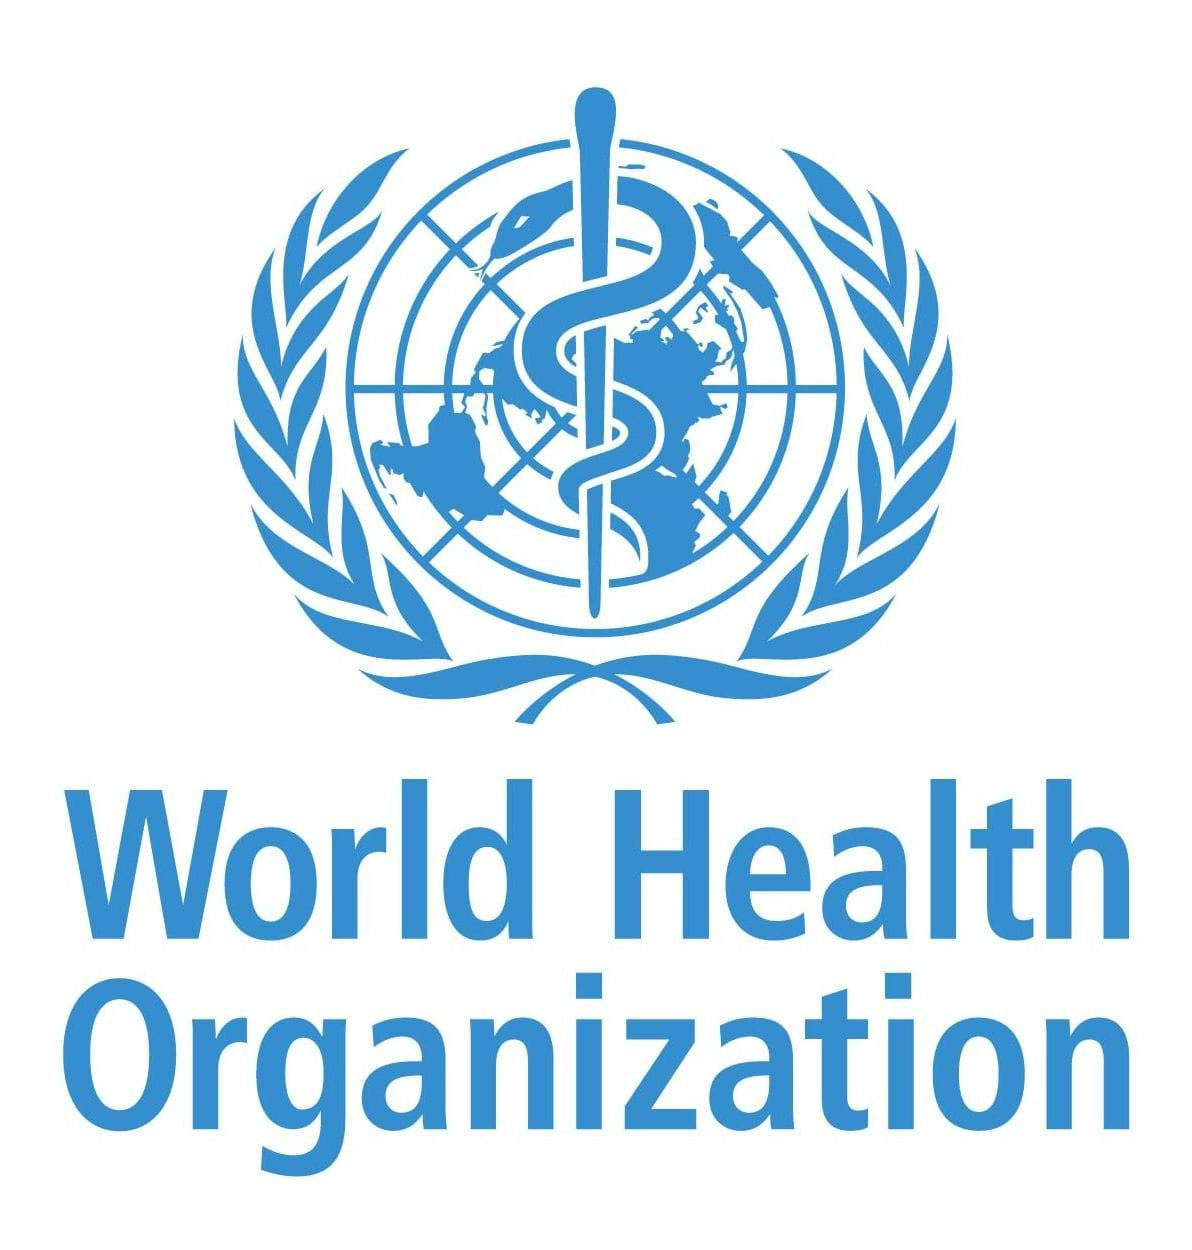 How to wear a non-medical fabric mask safely: The Dos